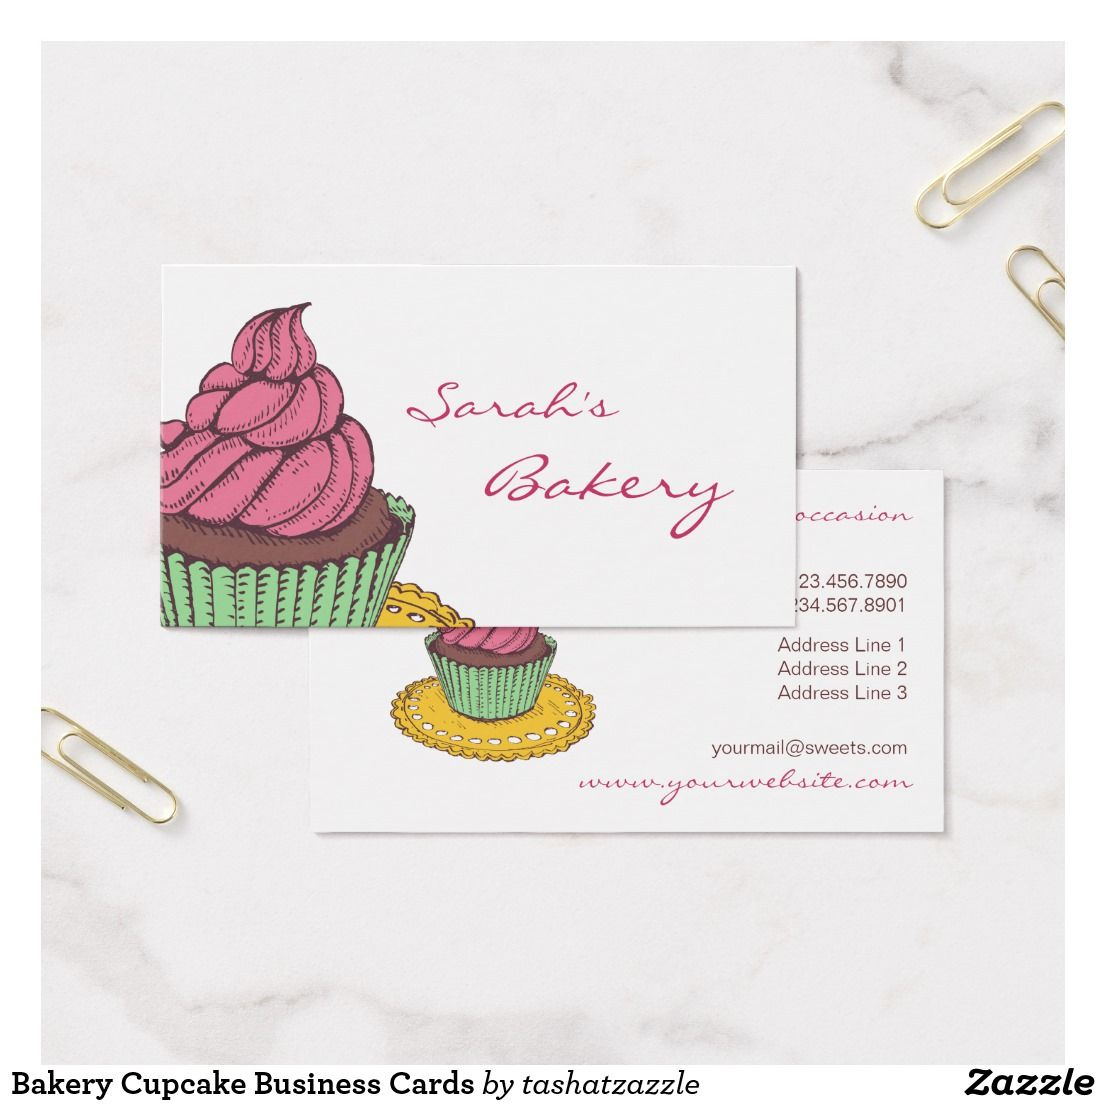 Bakery Cupcake Business Cards | Business | Pinterest | Business cards